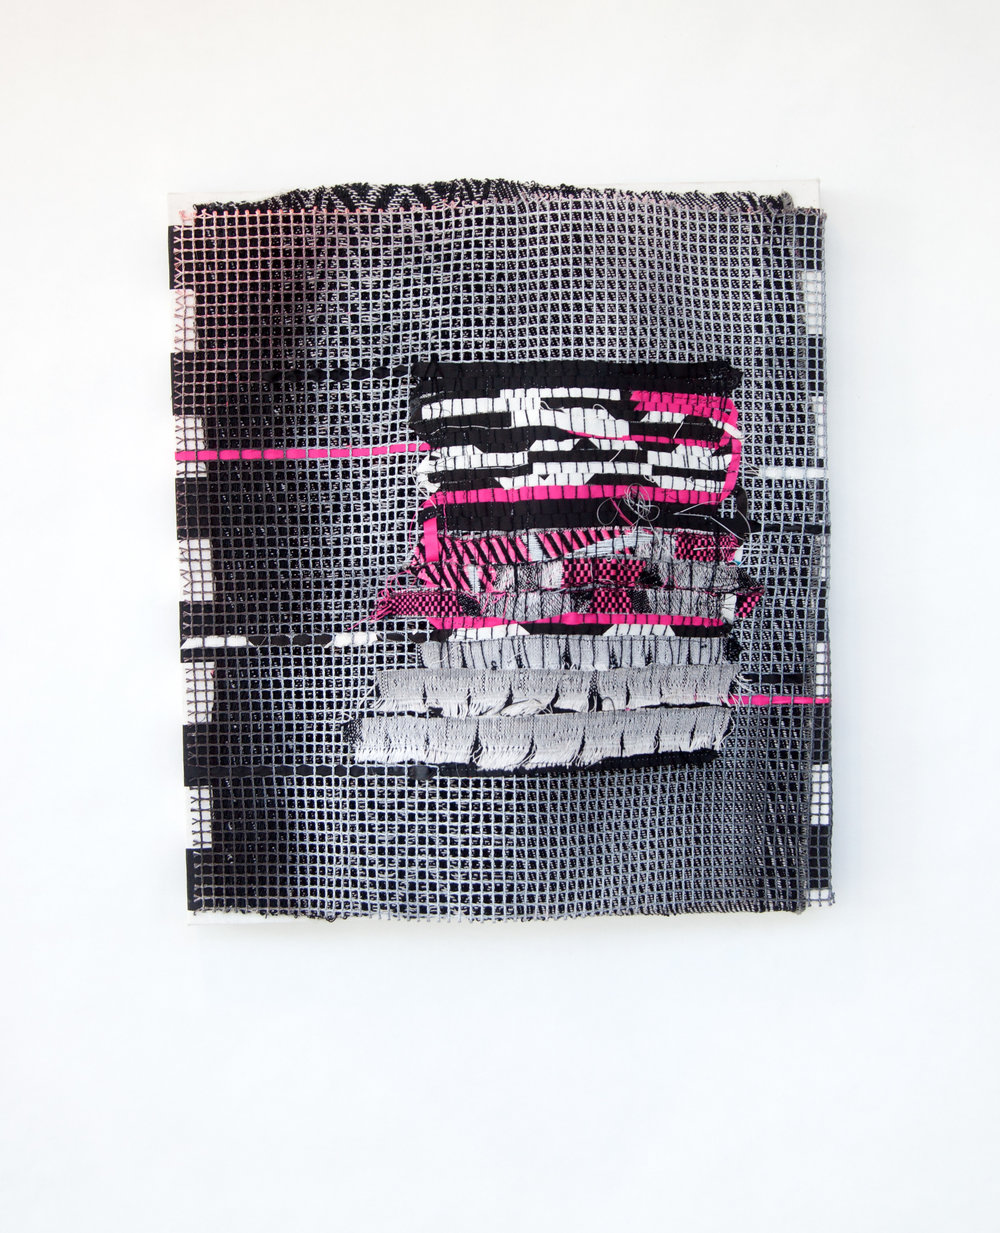 Marianne Fairbanks Tapestry Machine 1 (pink), 2017 polyester thread, yarn, plumbing line, reflective thread, invisible warp, fabric